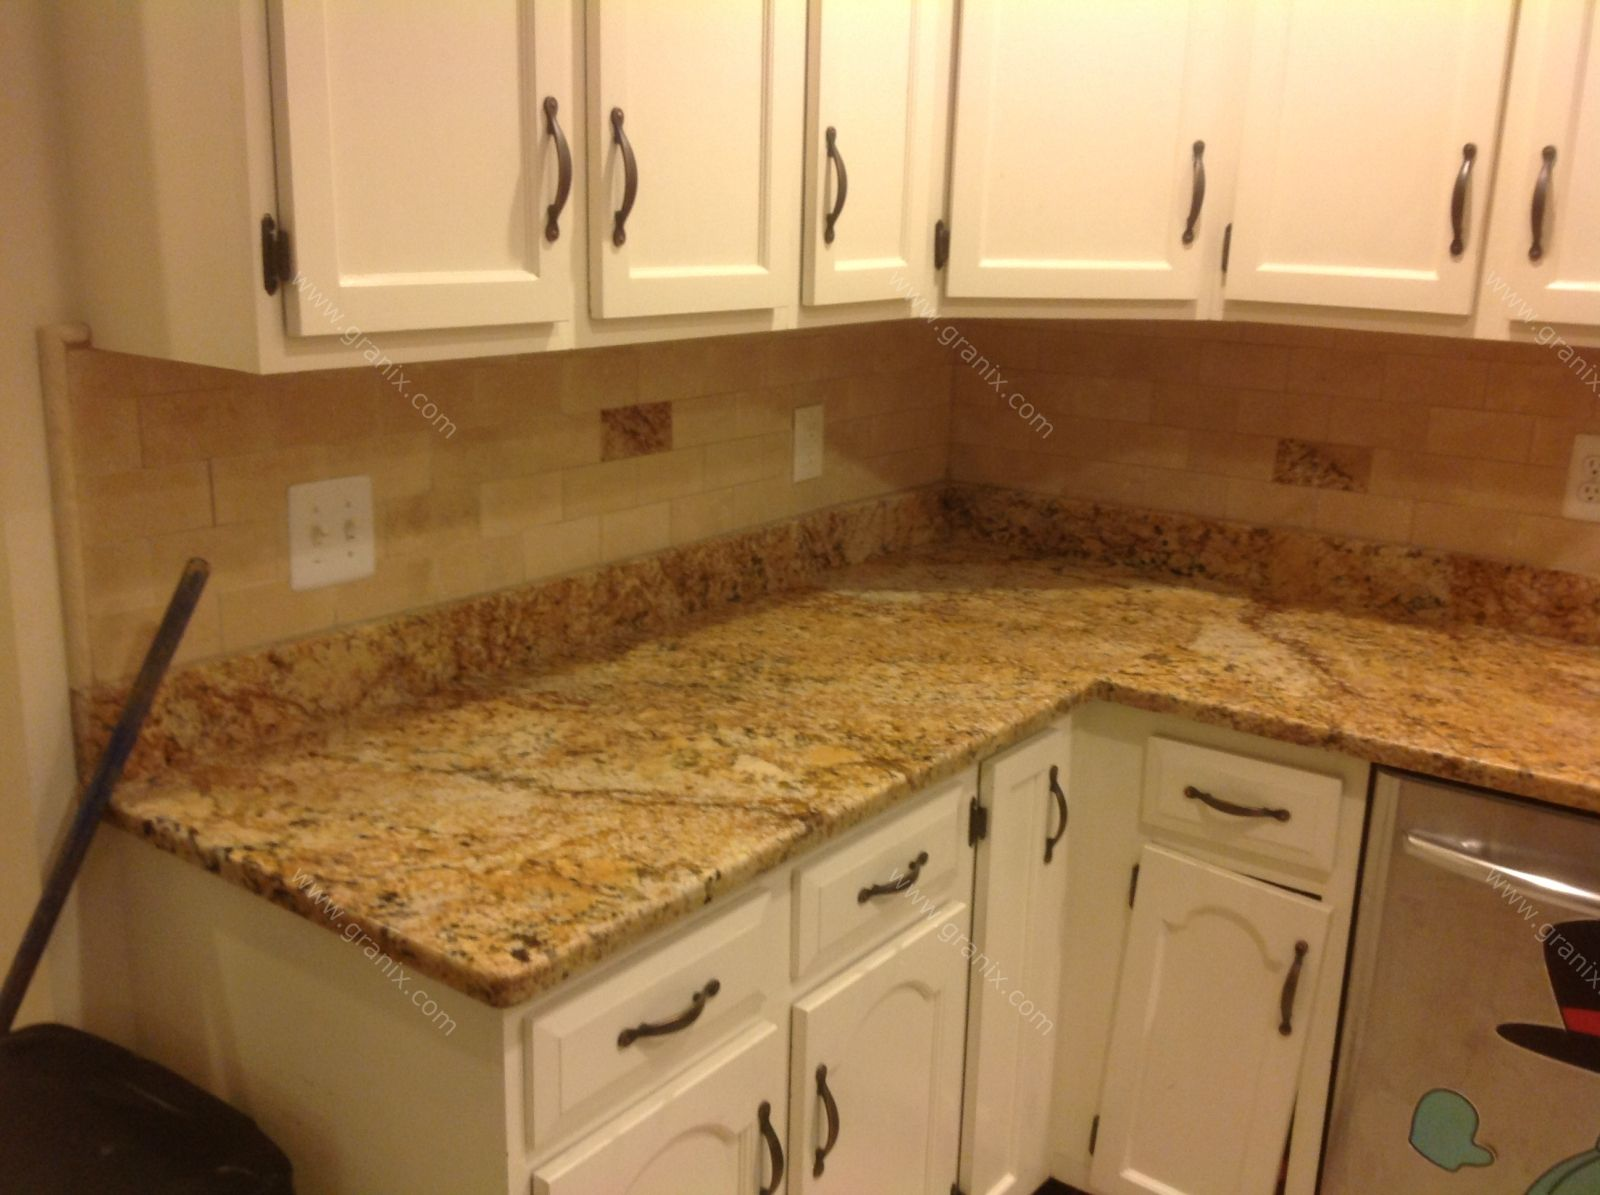 Backsplash ideas for granite countertops leave a reply cancel reply kitchen inspiration Kitchen design with granite countertops